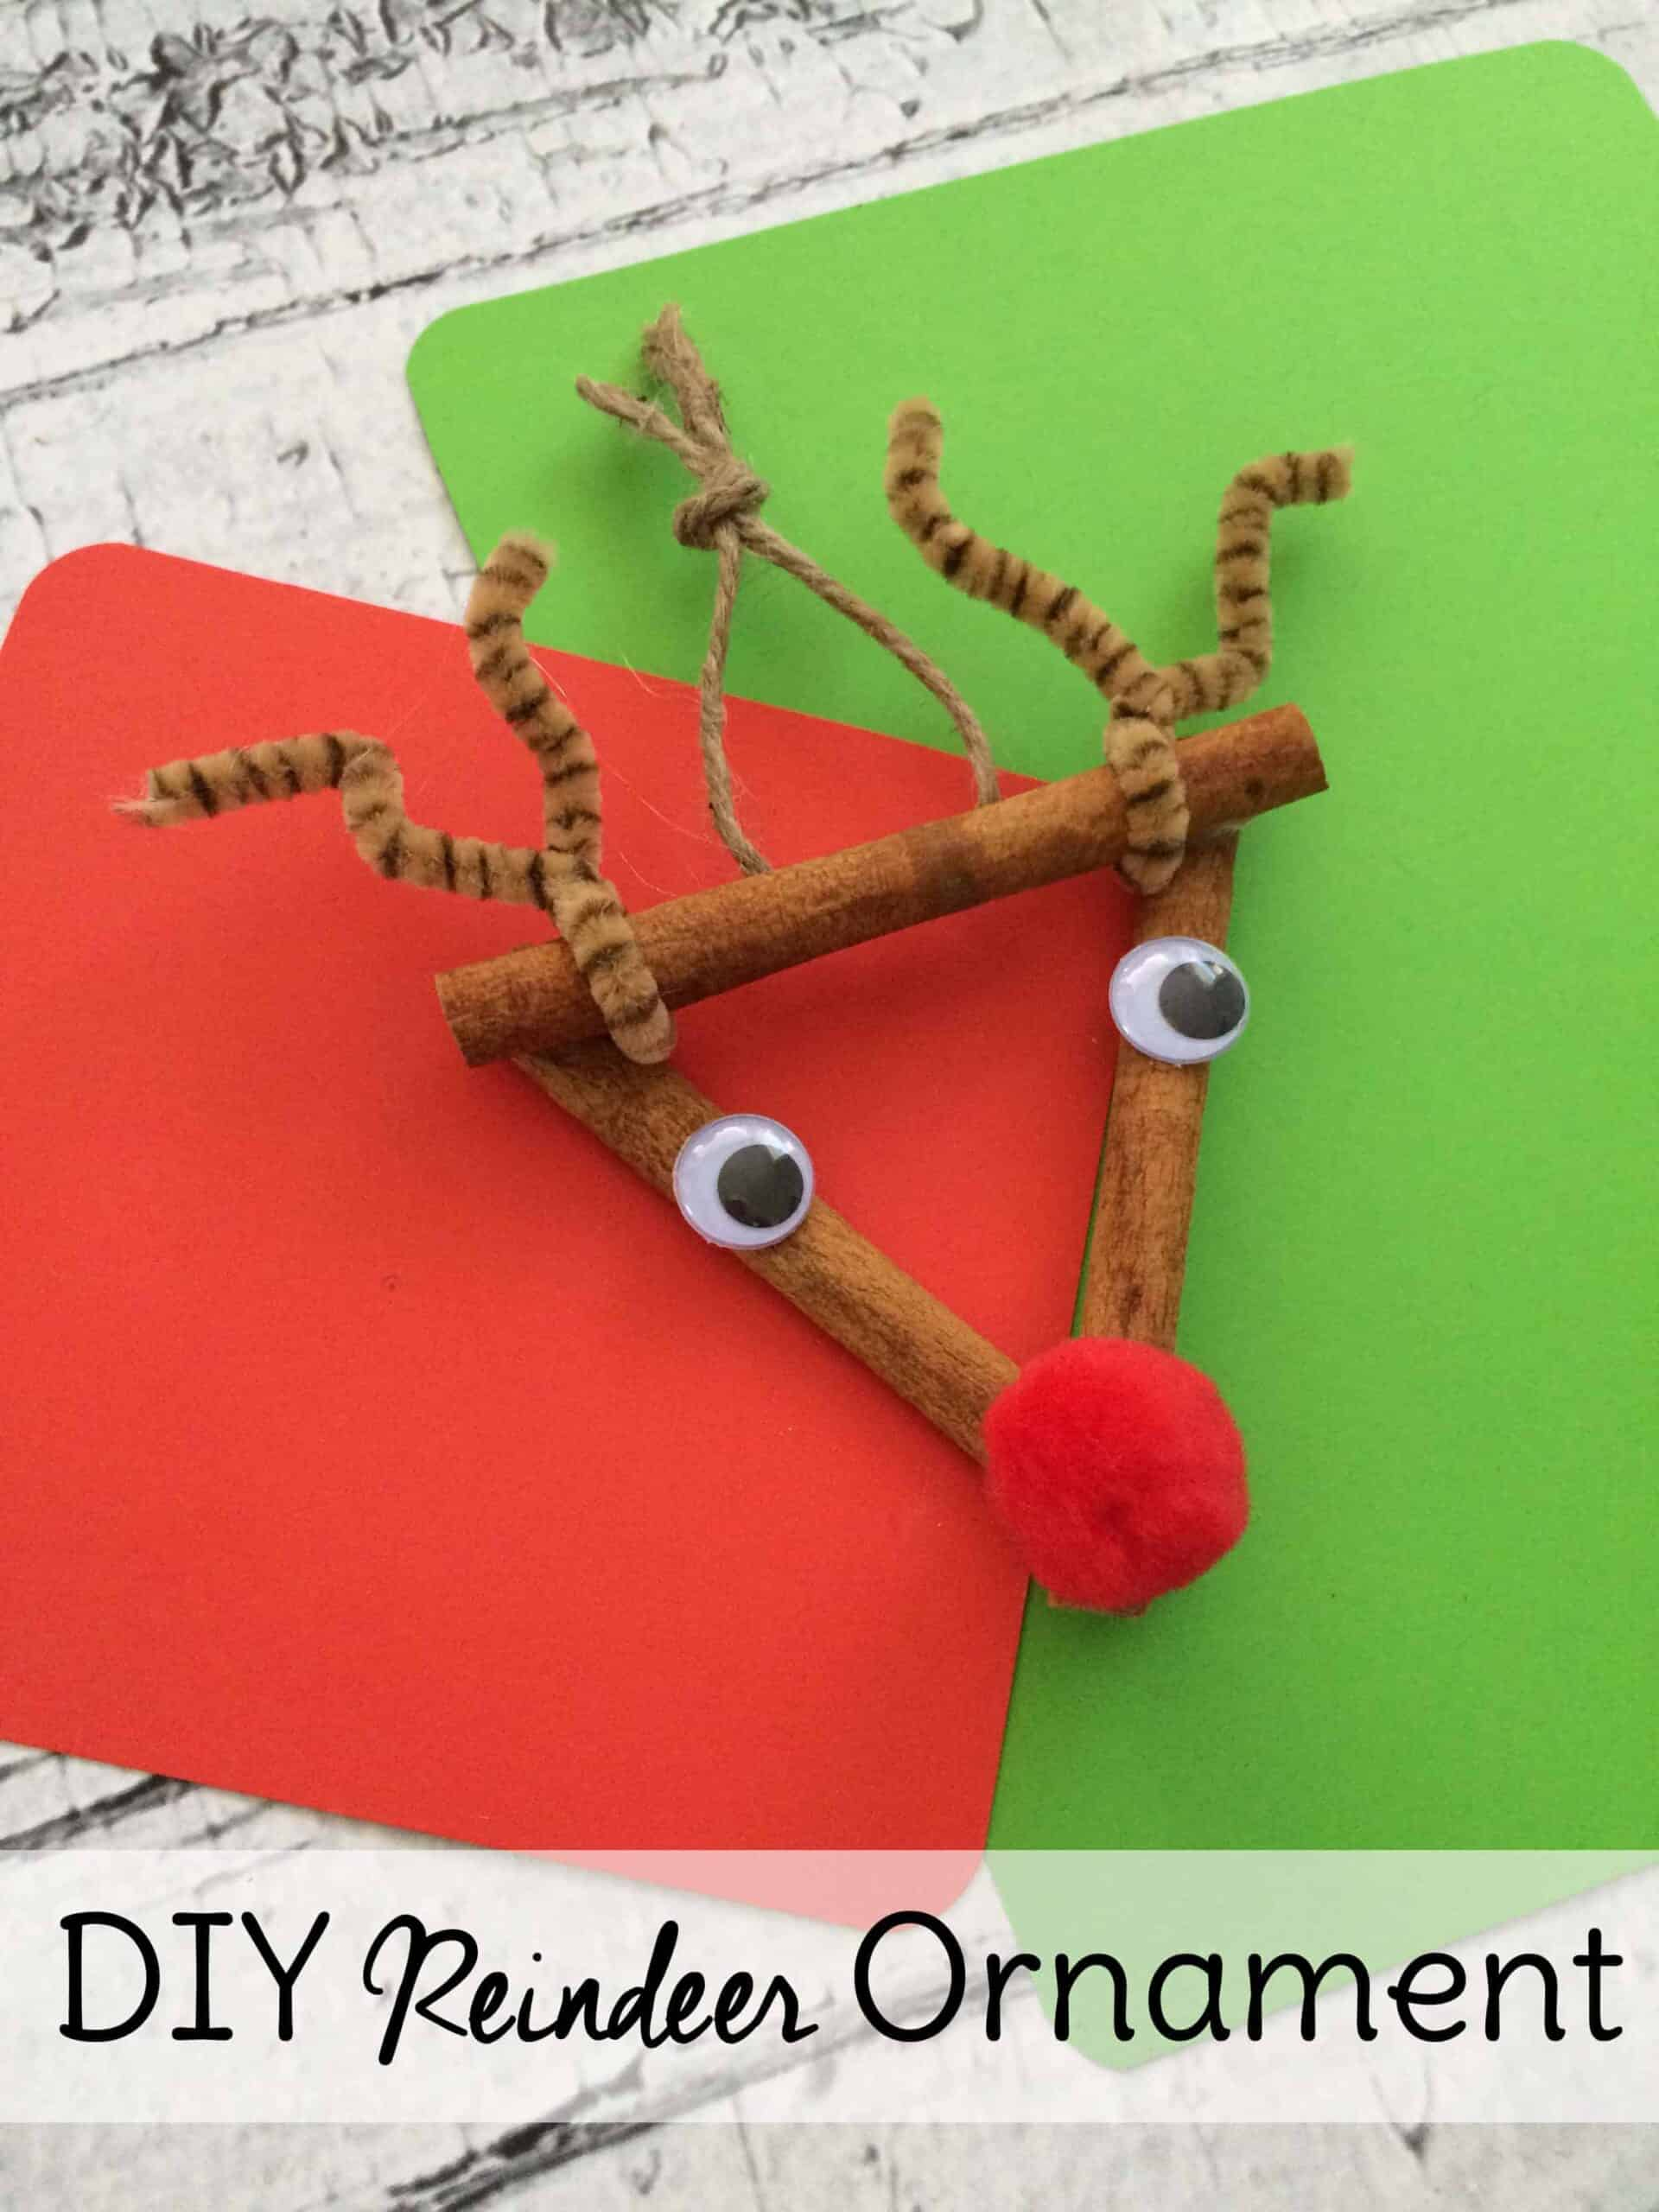 Homemade Reindeer Ornament. Make this DIY Christmas ornament craft with your kids for some holiday fun.